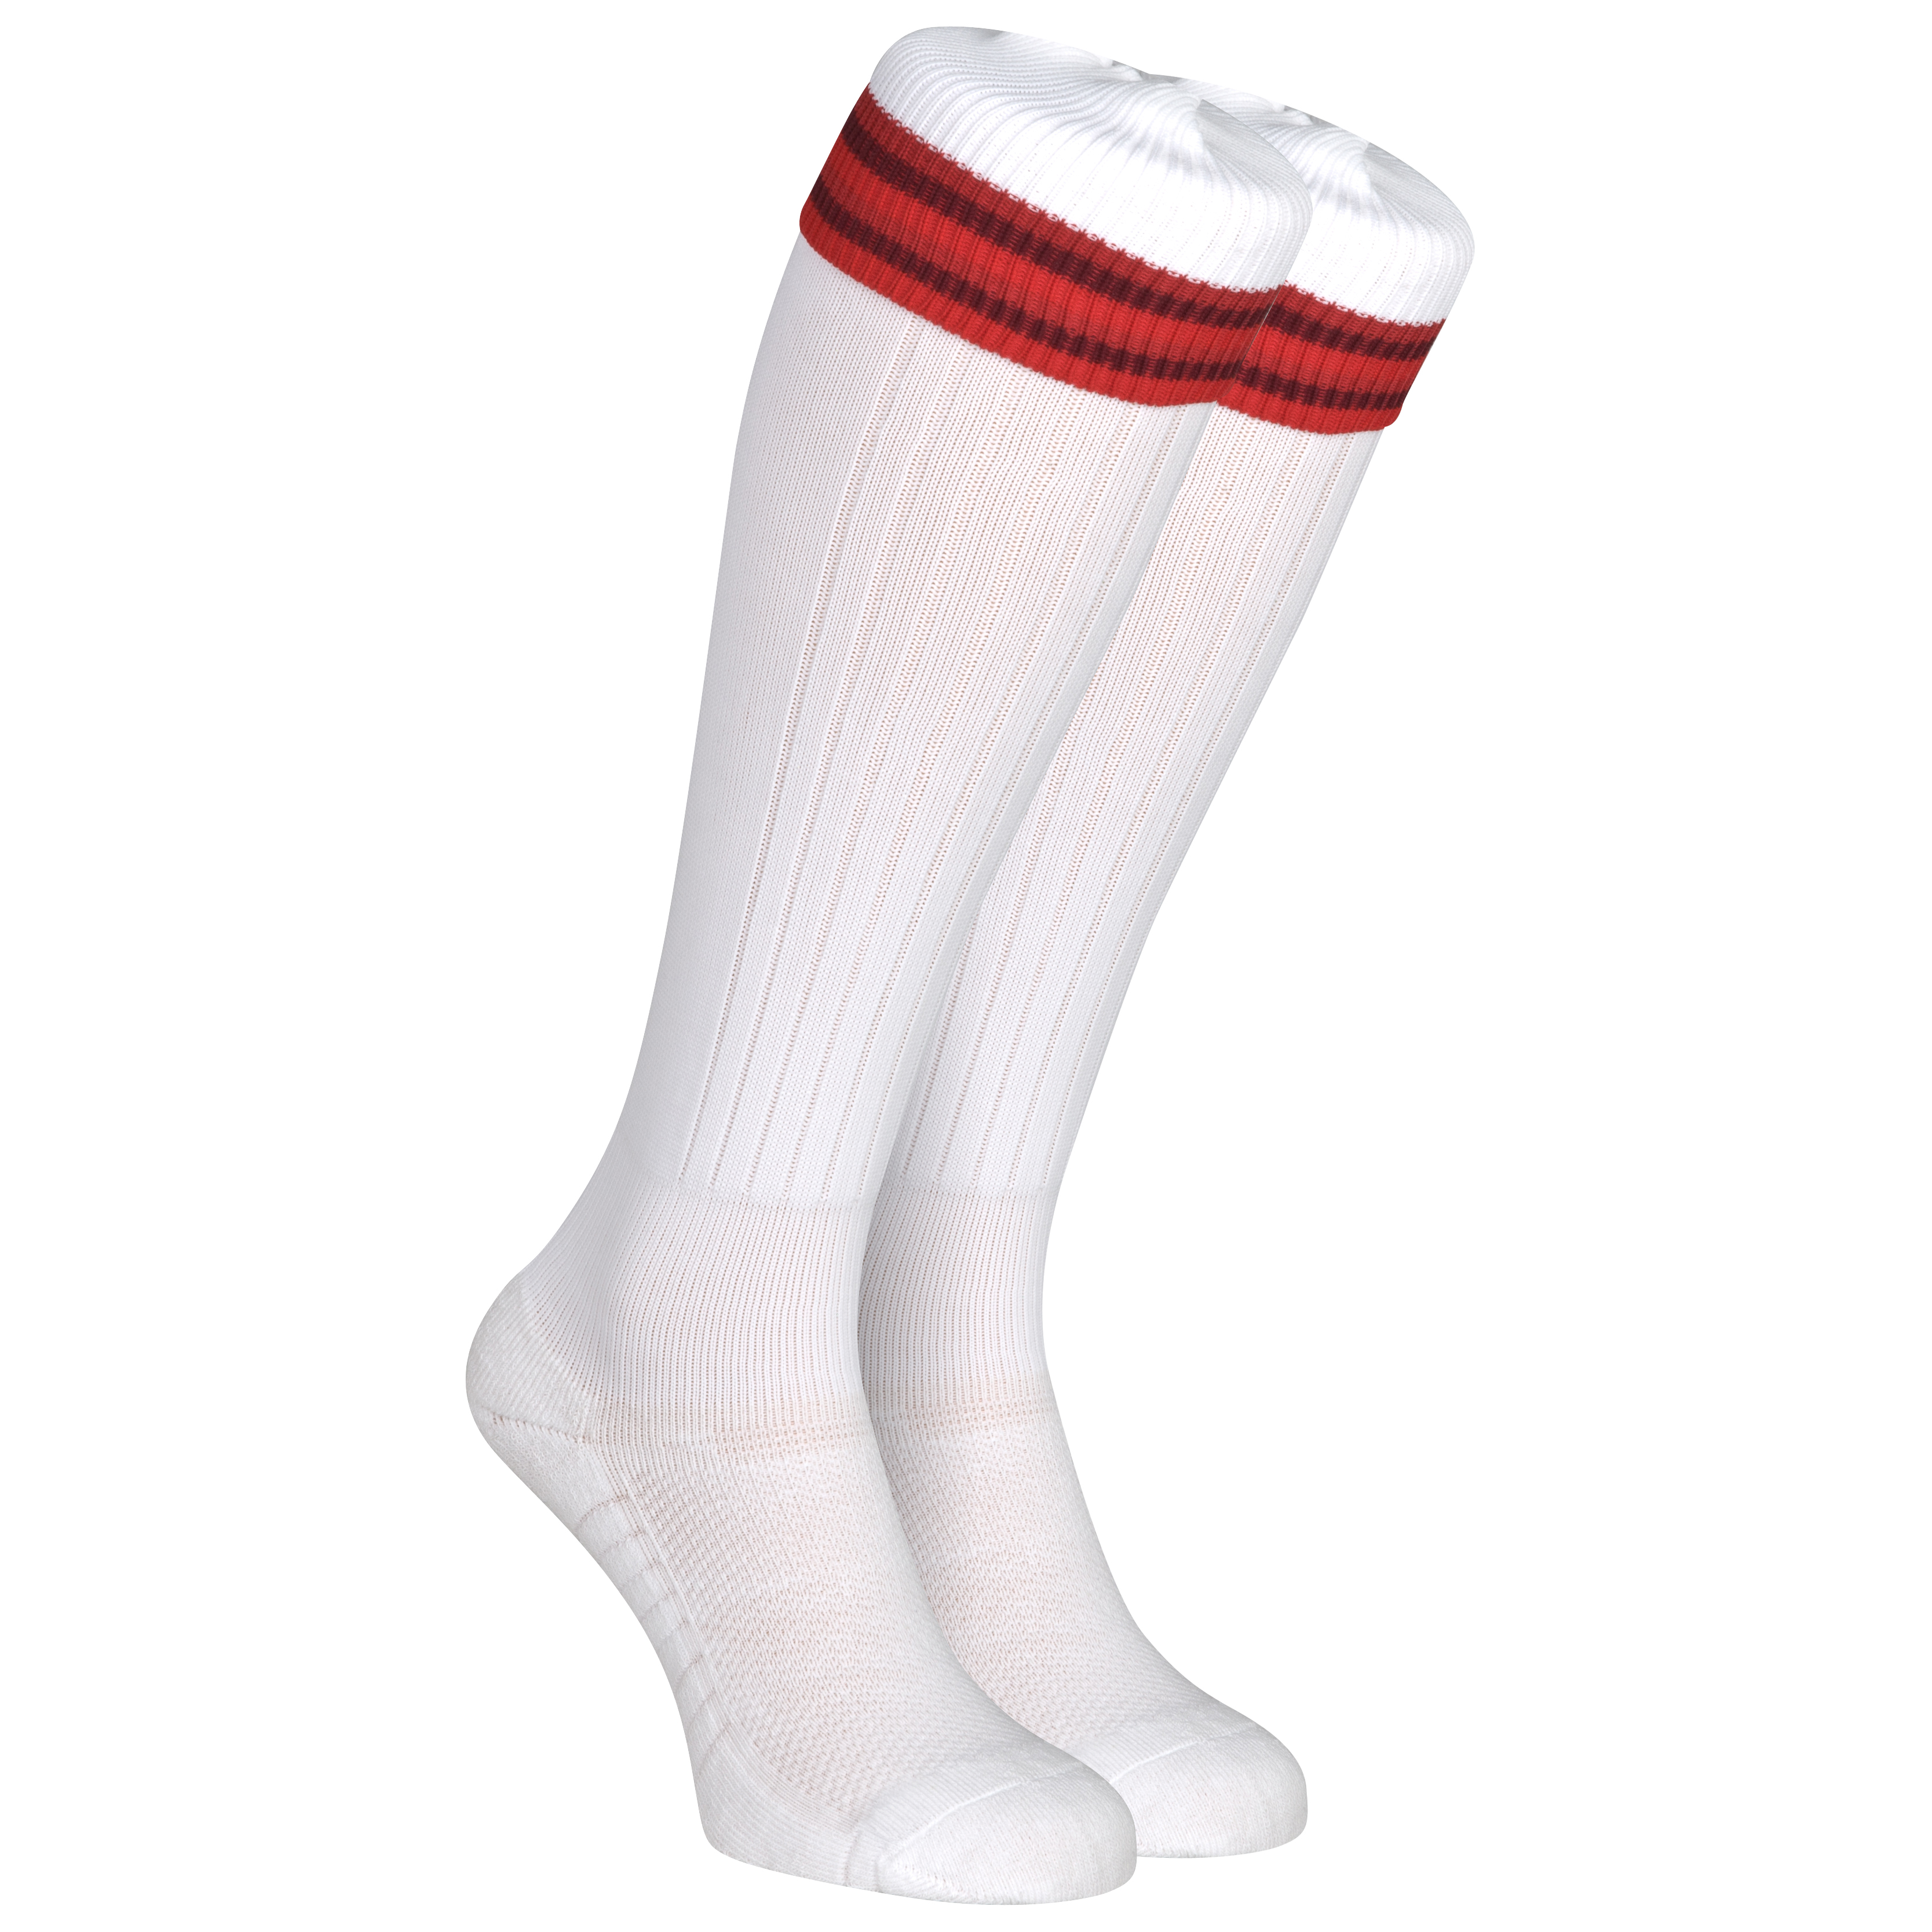 England Home Sock 2012/13 - Boys